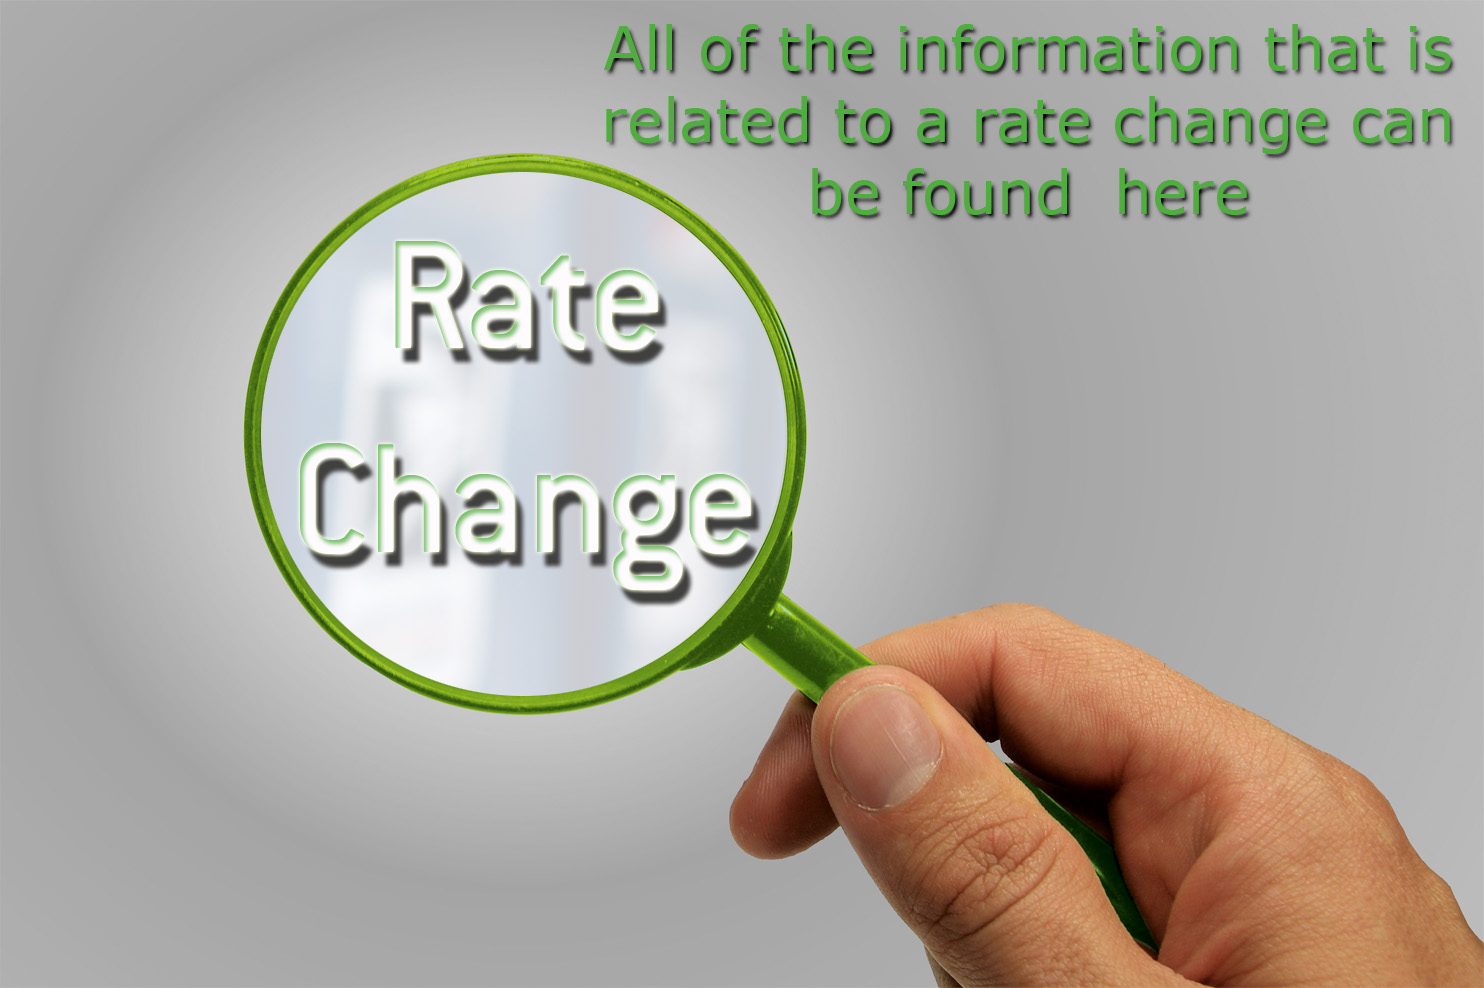 Rate change